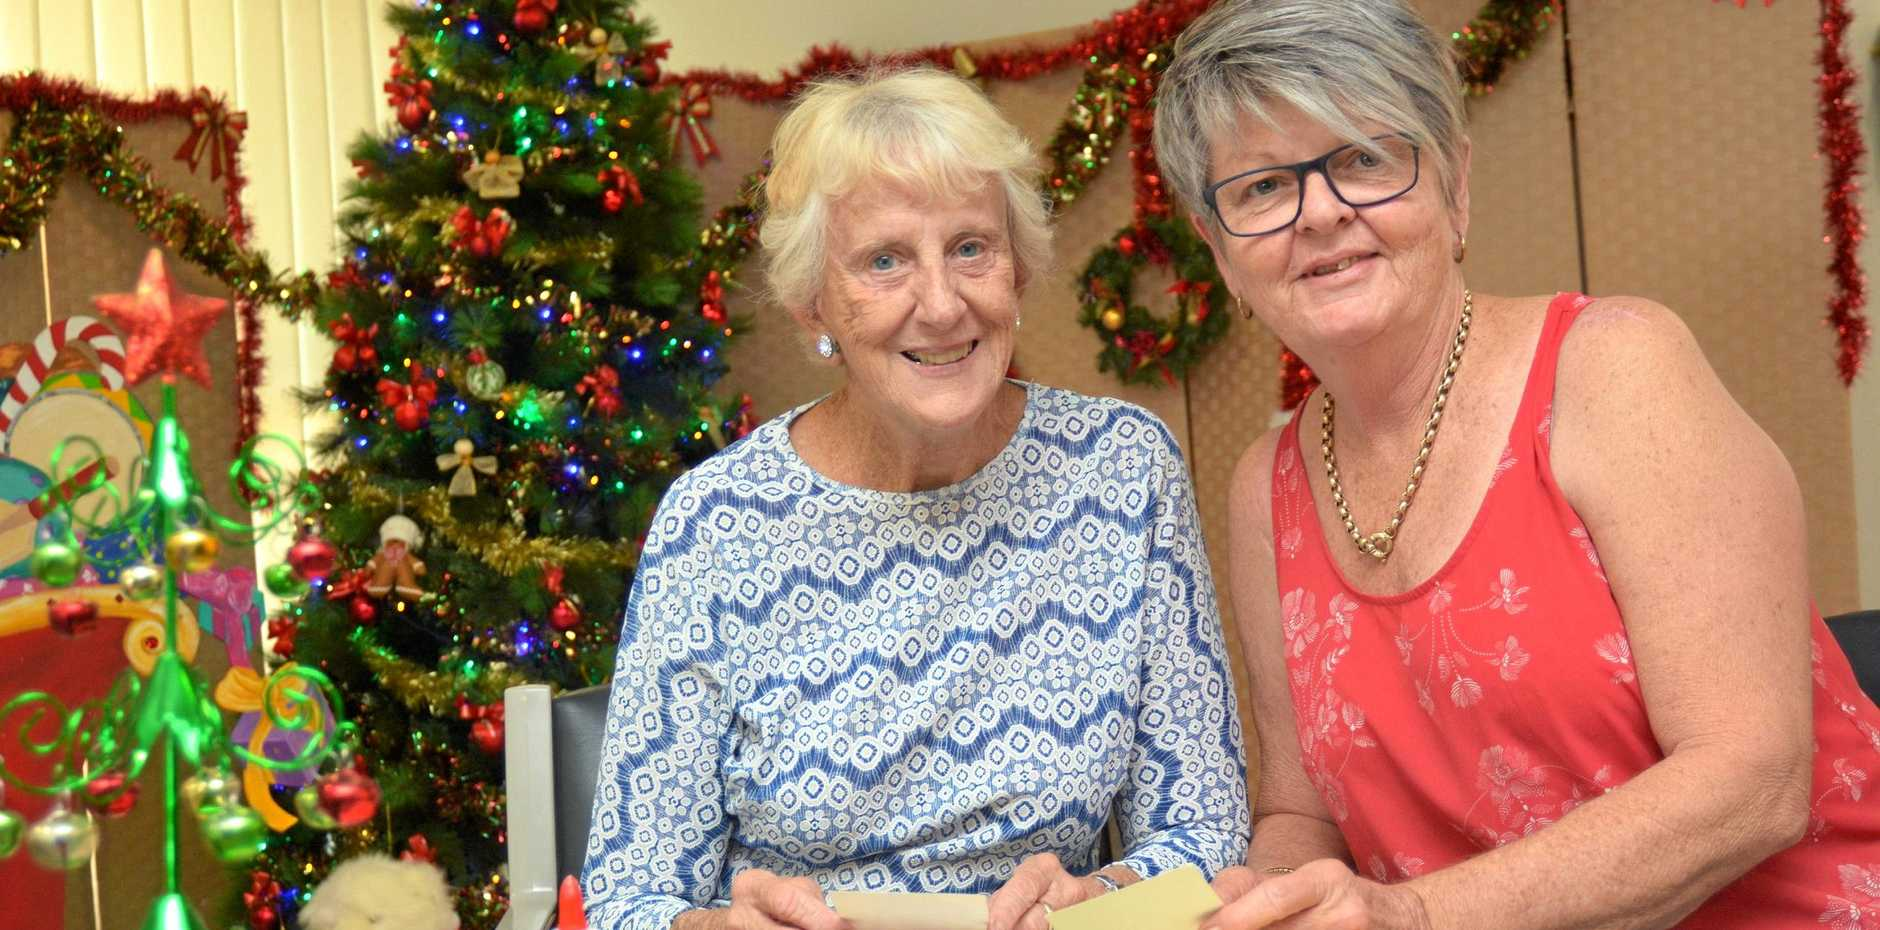 SHARING AND CARING: Client Pat Pritchard and volunteer Robyn Hollis, take advantage of craft activities to make Christmas gifts.